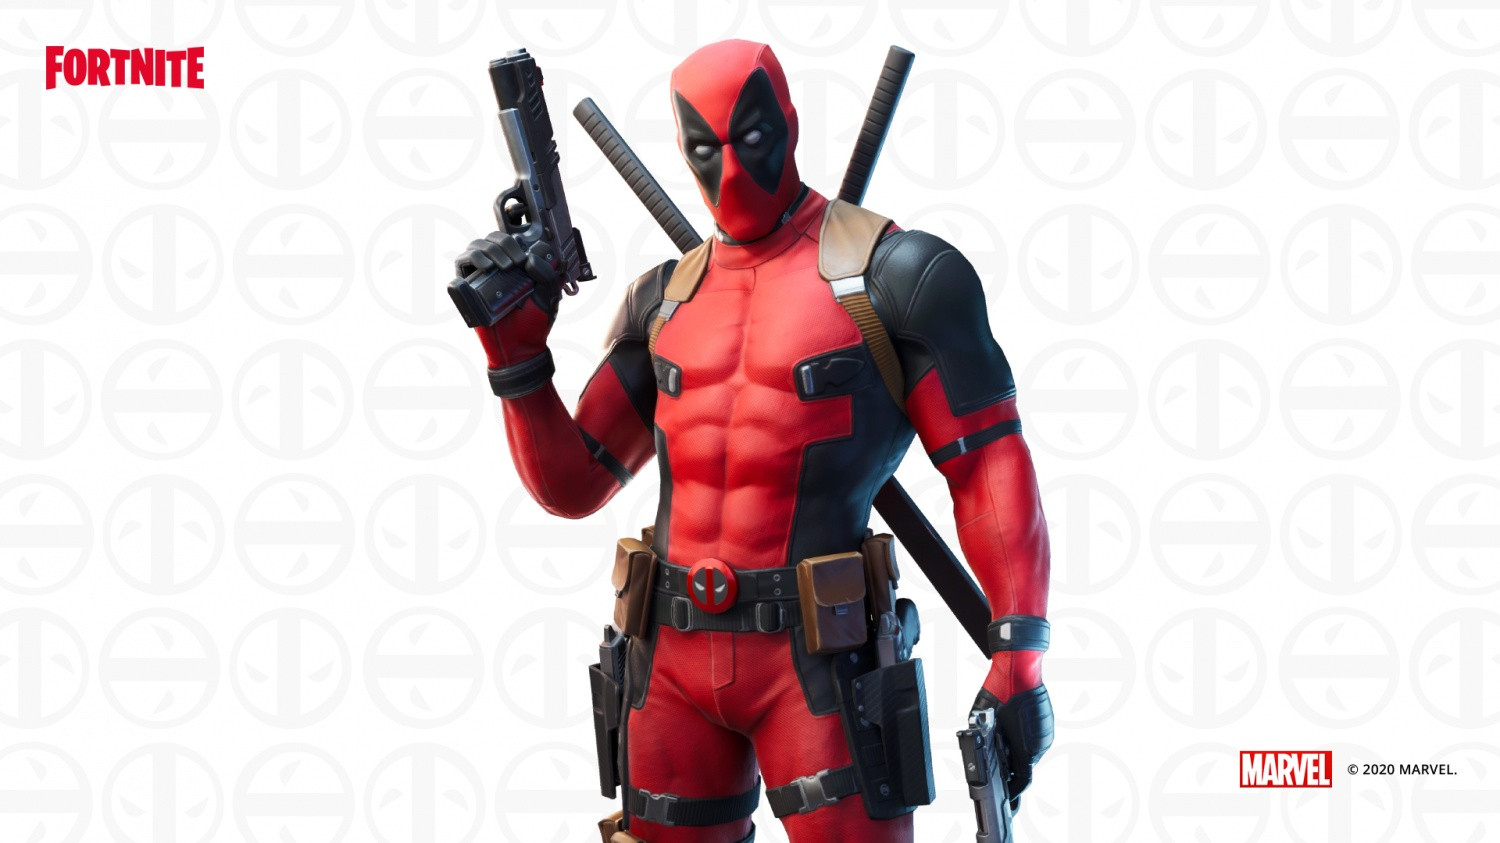 Fortnite Deadpool Outfit Without Mask is Available, So How Can You Get it?